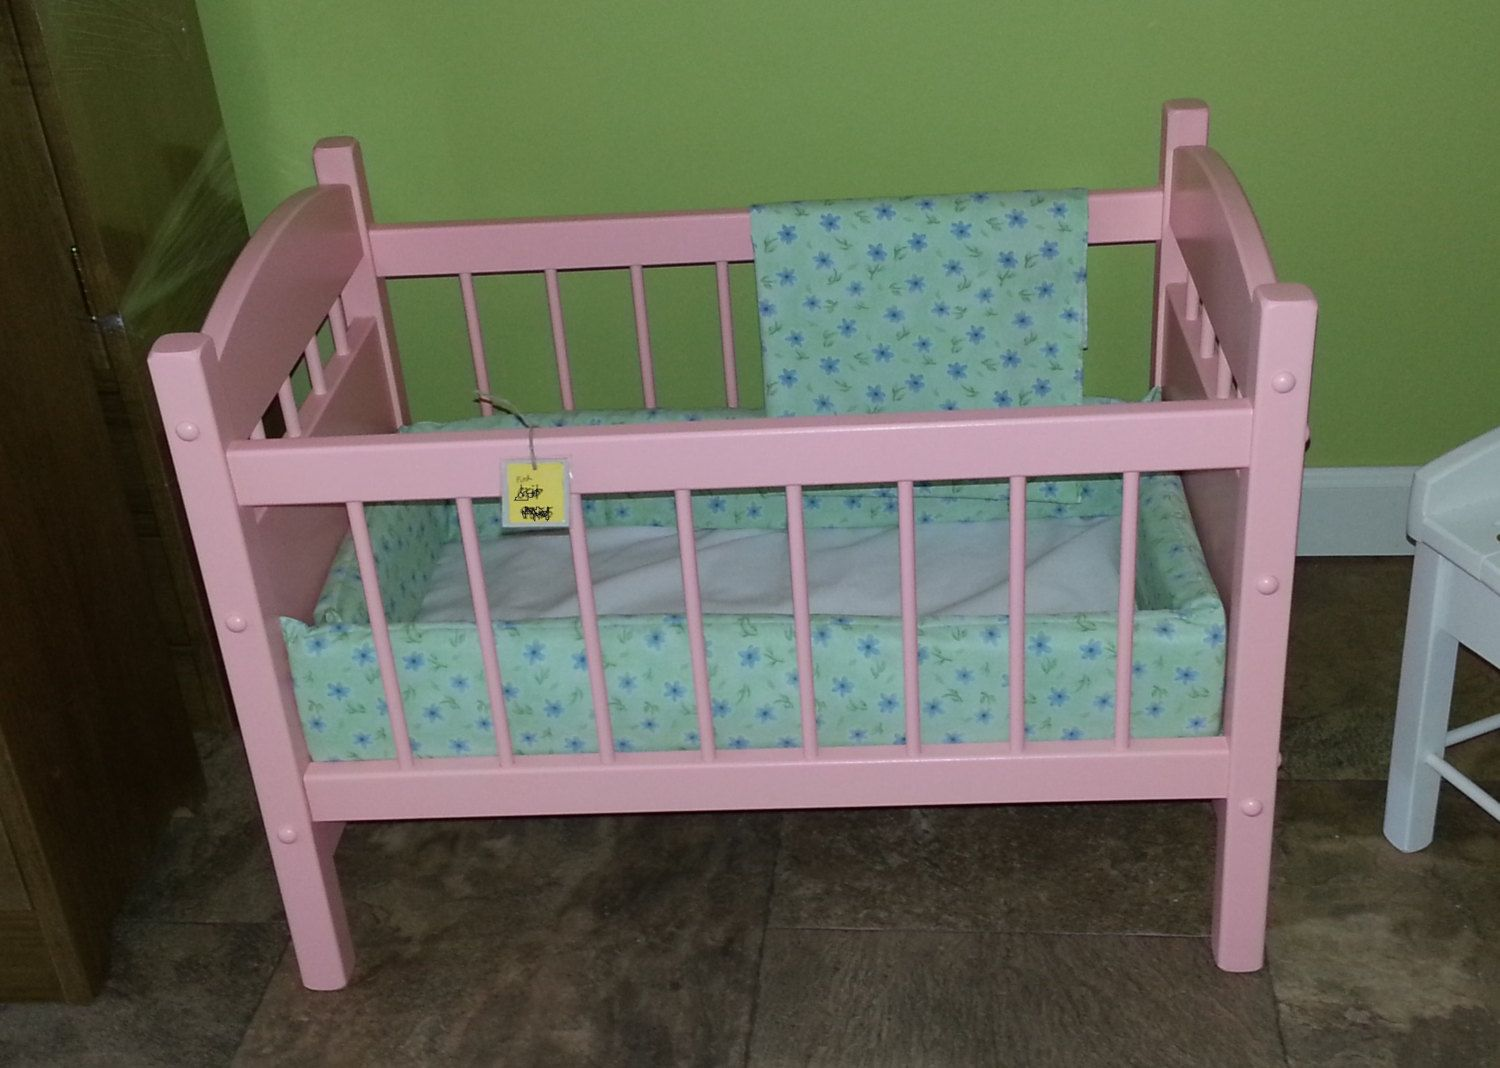 Best Image Of Images Of Baby Doll Cribs And Beds Baby Doll 640 x 480